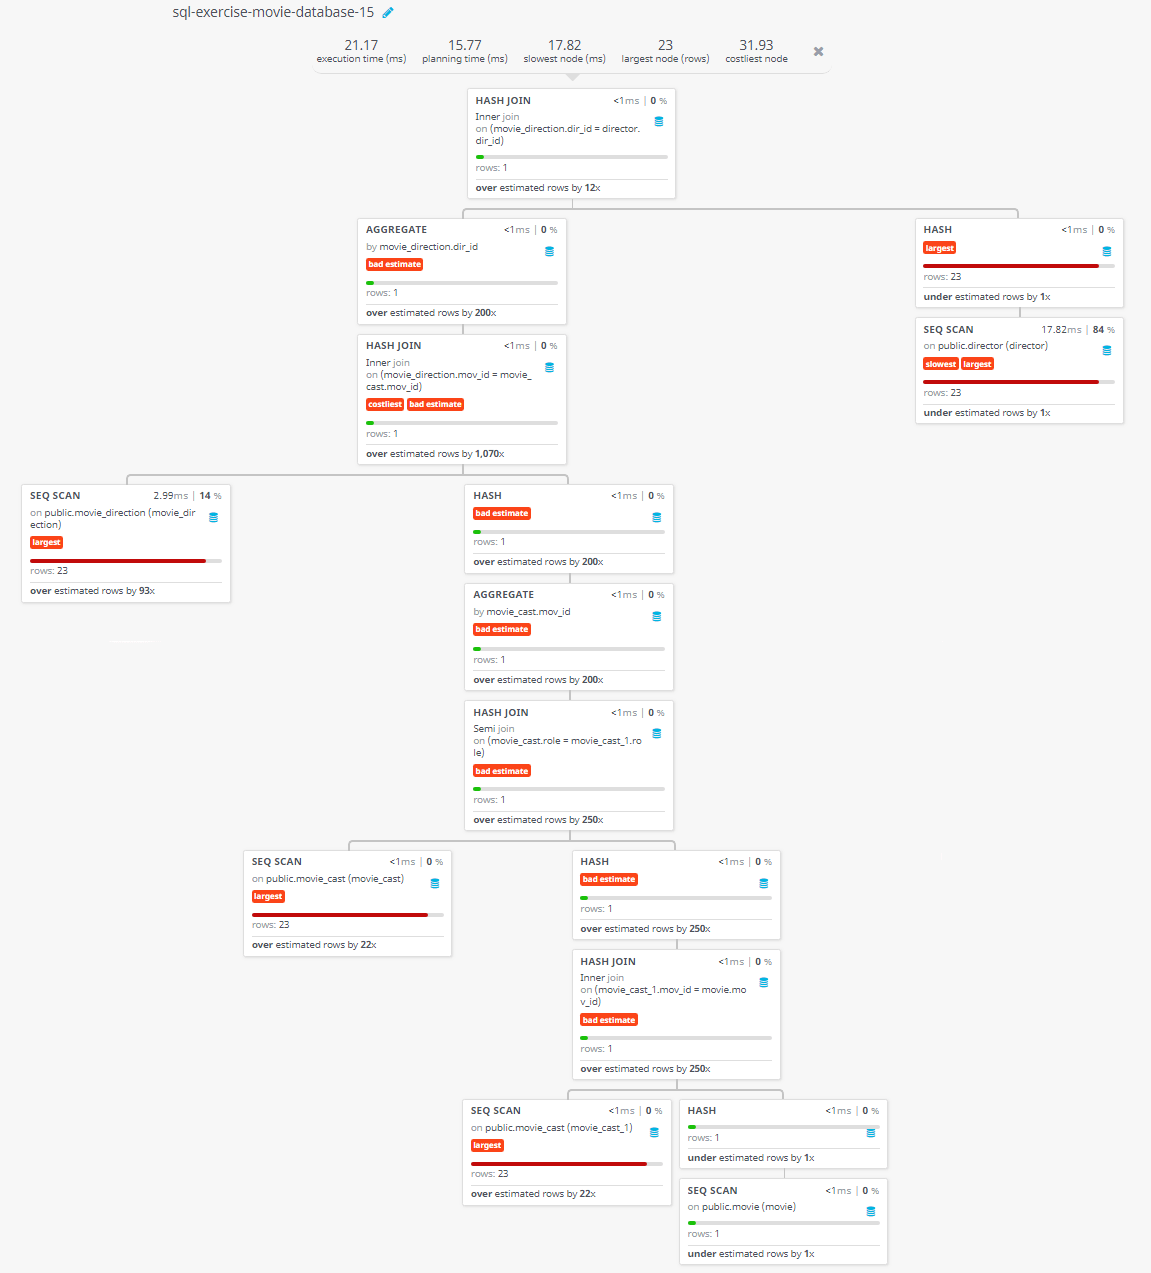 Query visualization of Find the name of the director who directed a movie that casted a role for 'Eyes Wide Shut' - Rows